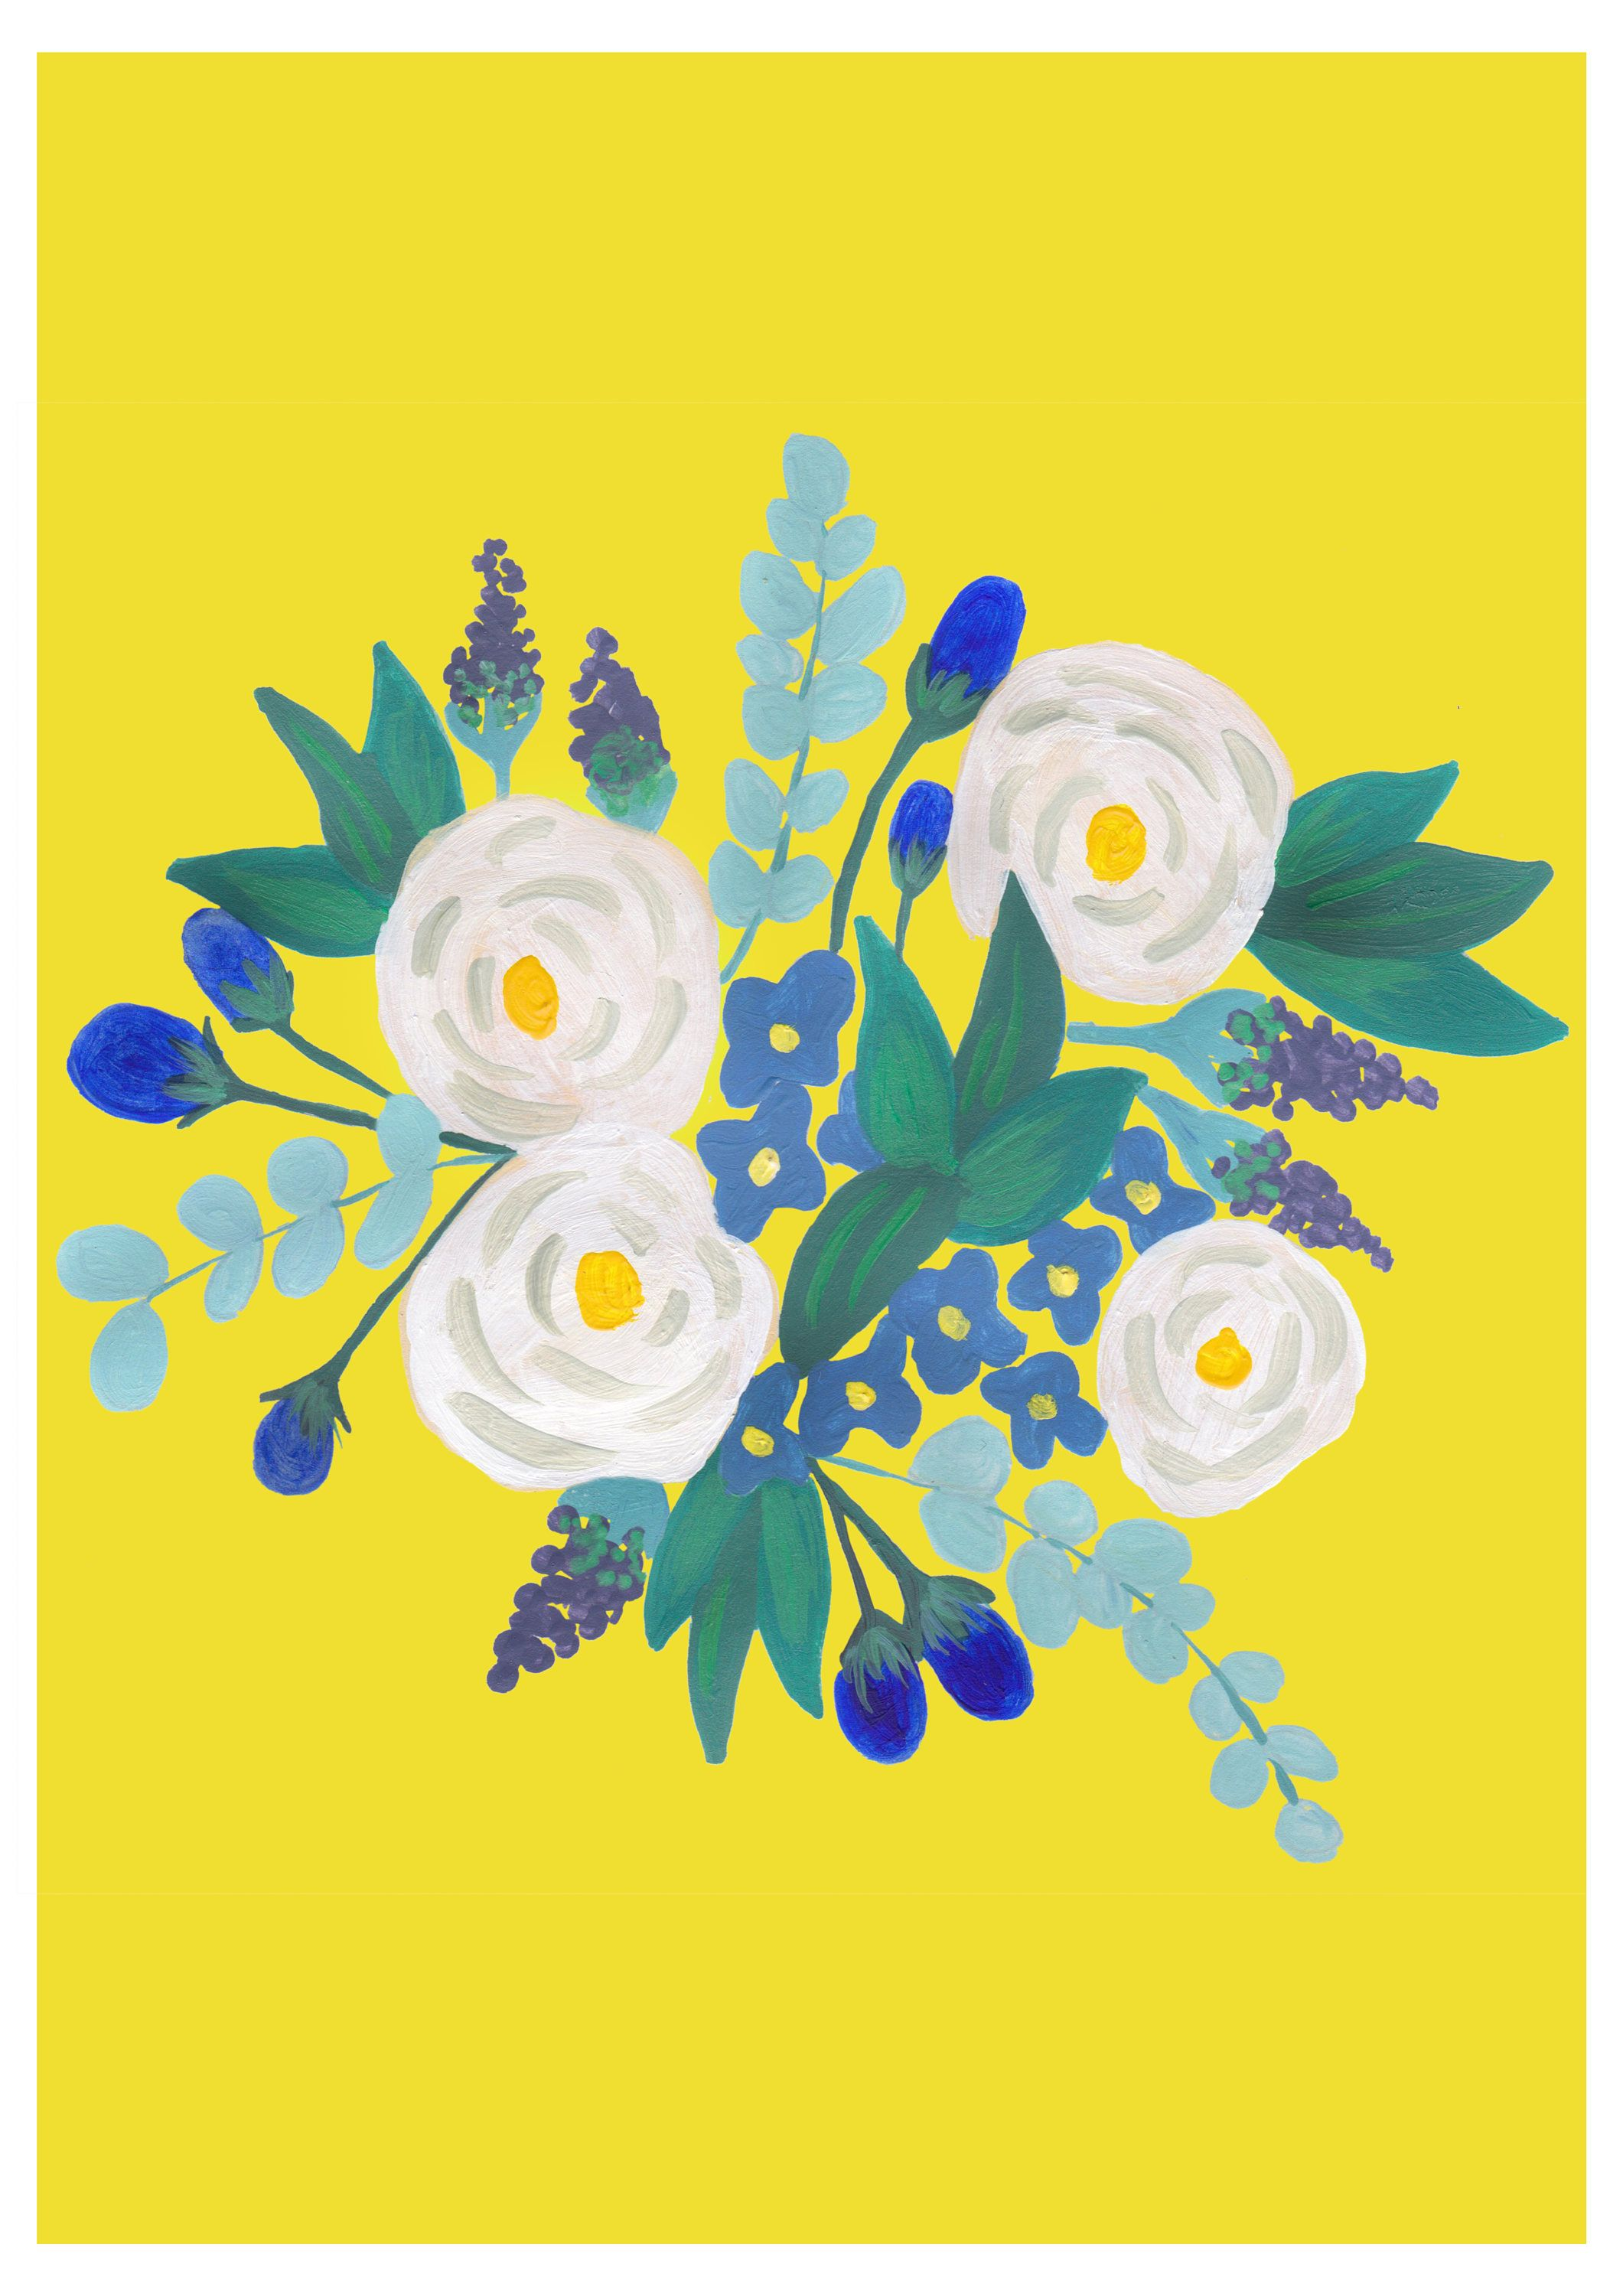 Bouquet of Flowers Print - Flower illustration - A colourful poster ...